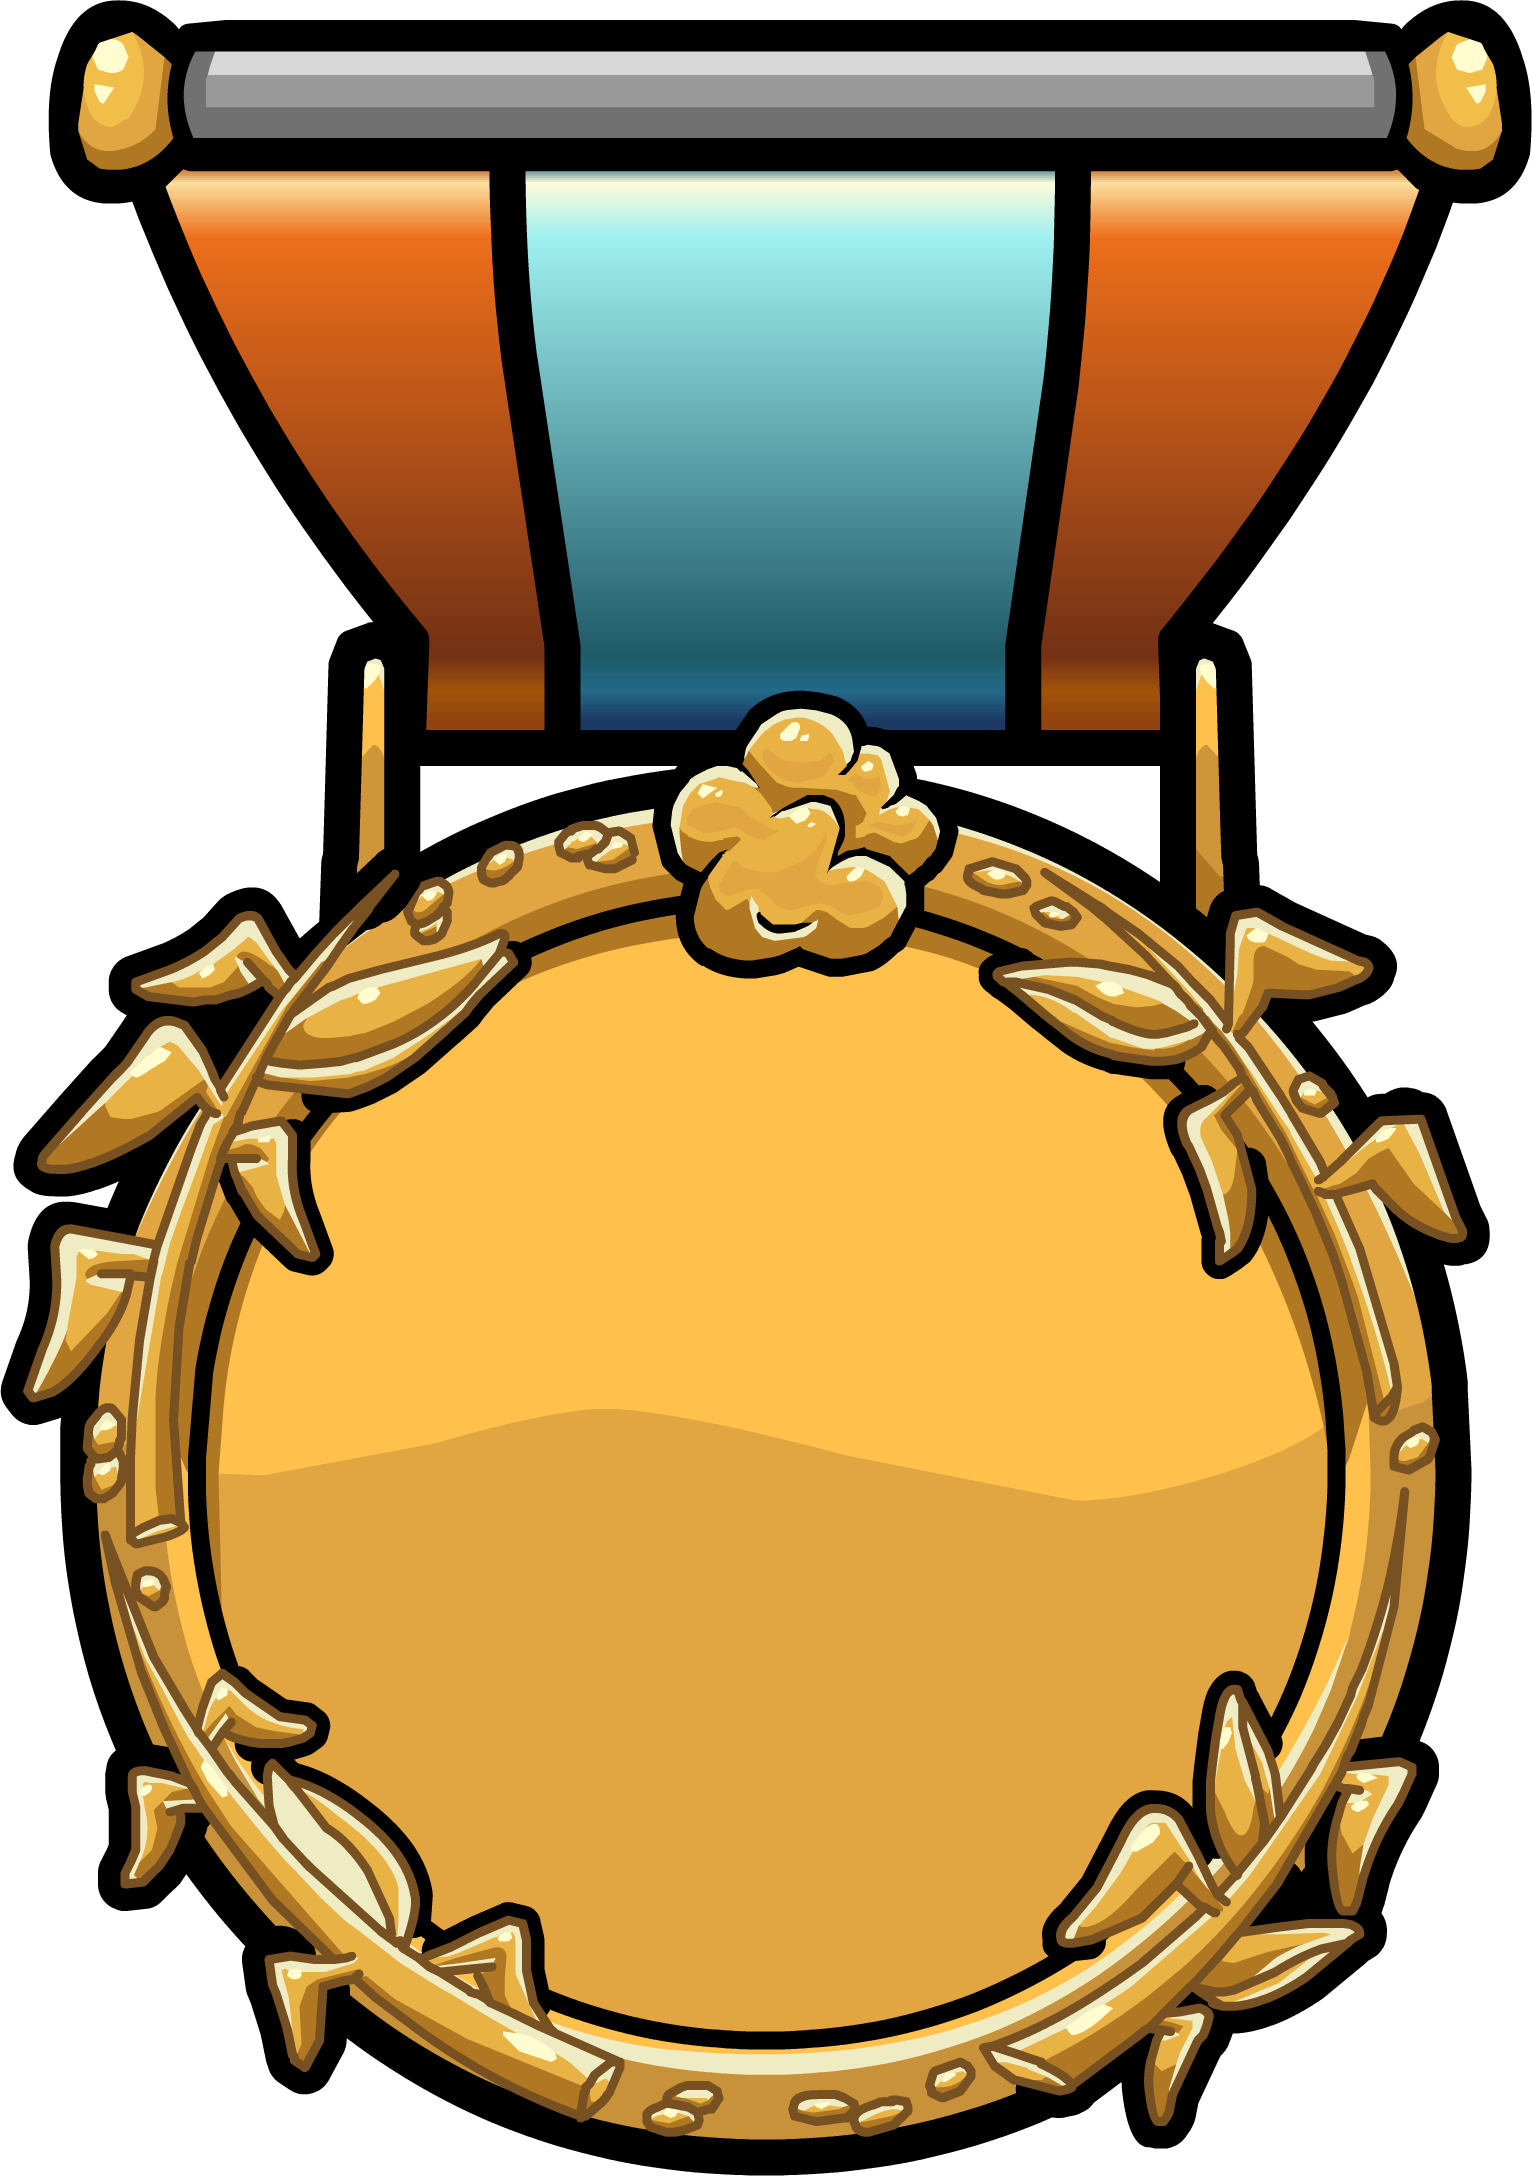 Mission 11 Medal | Club Penguin Wiki | Fandom powered by Wikia